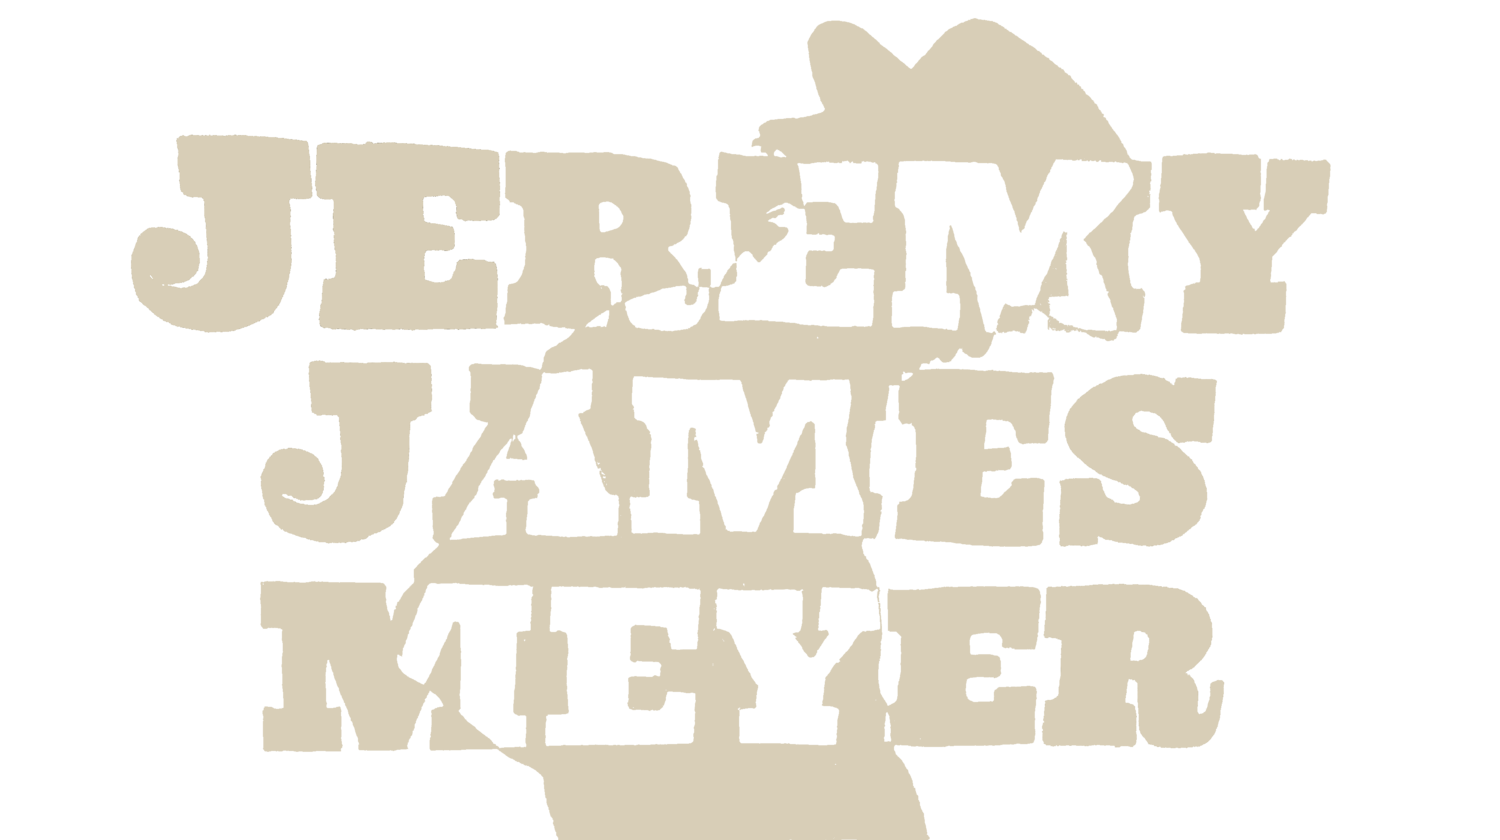 Jeremy James Meyer